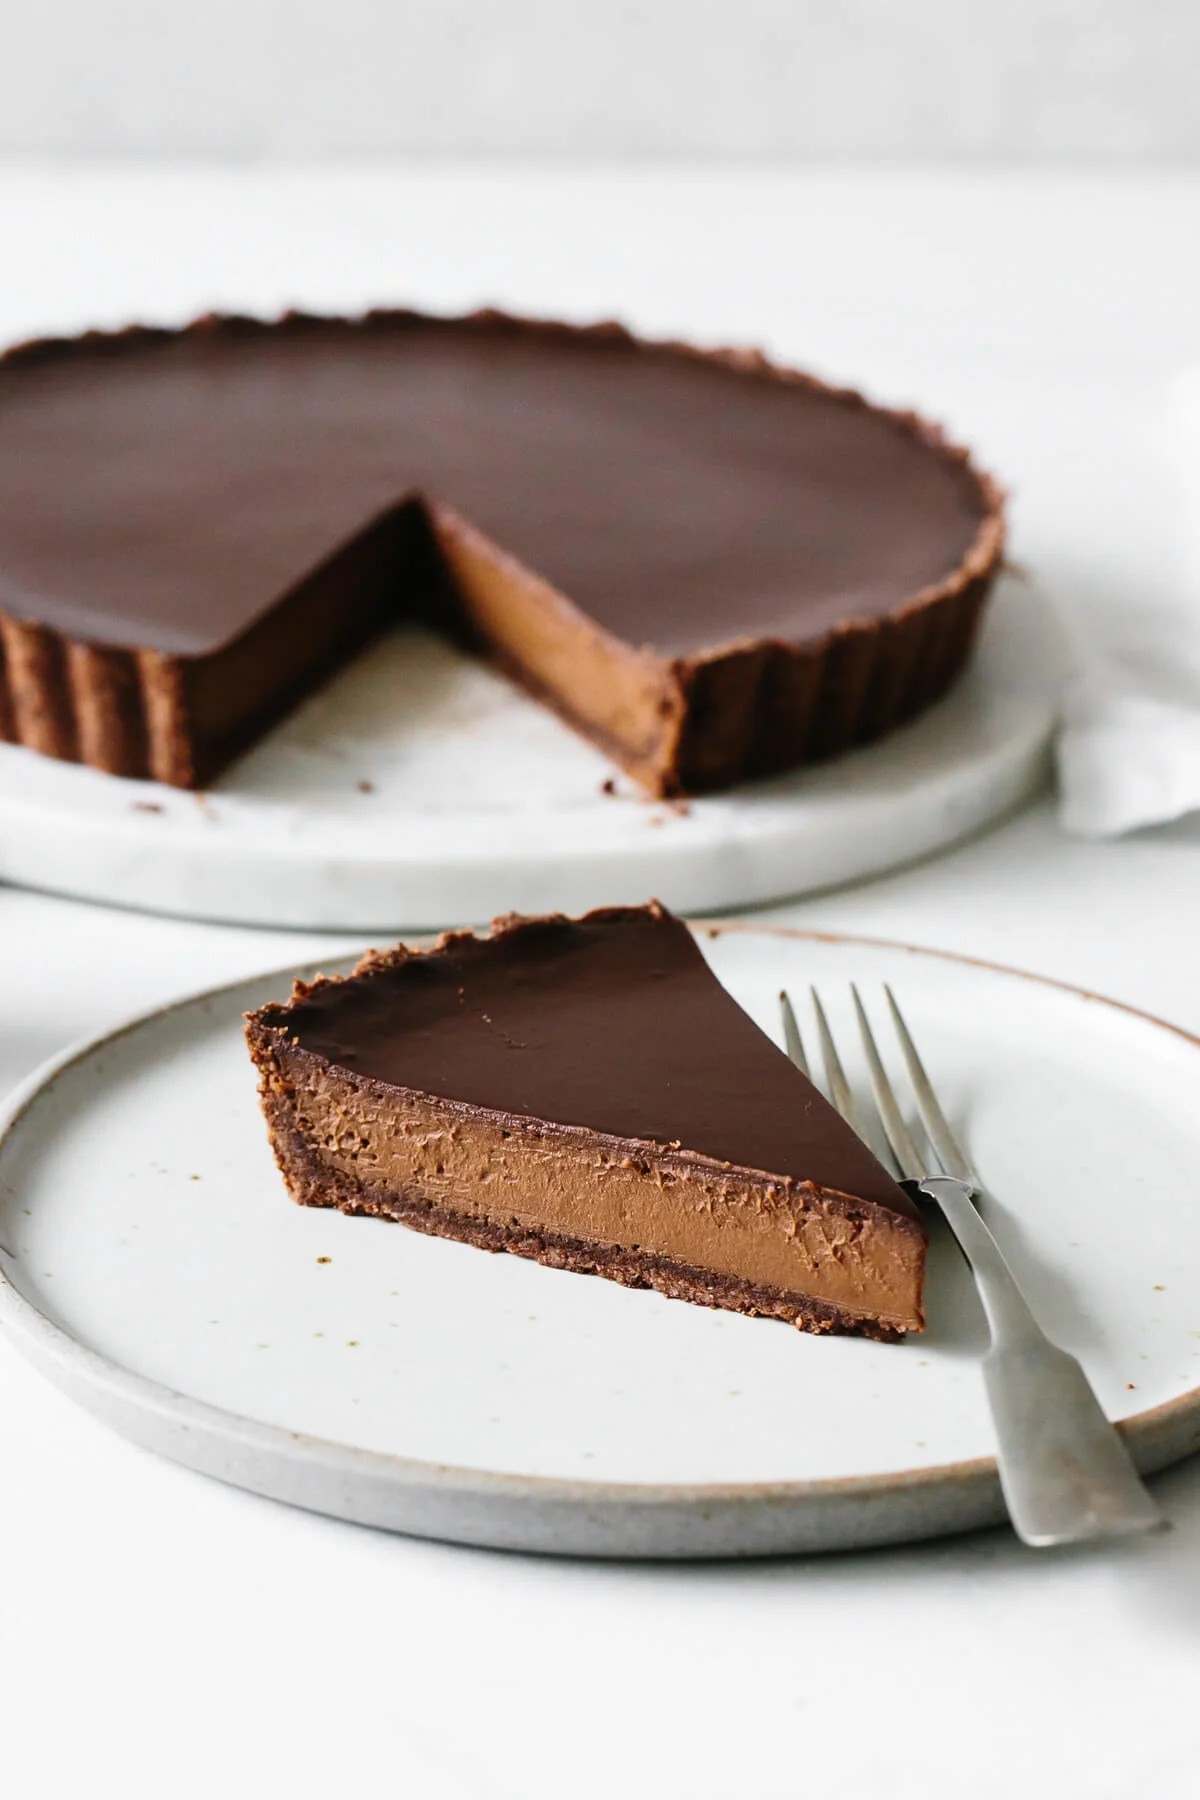 A single slice of chocolate tart on a plate.